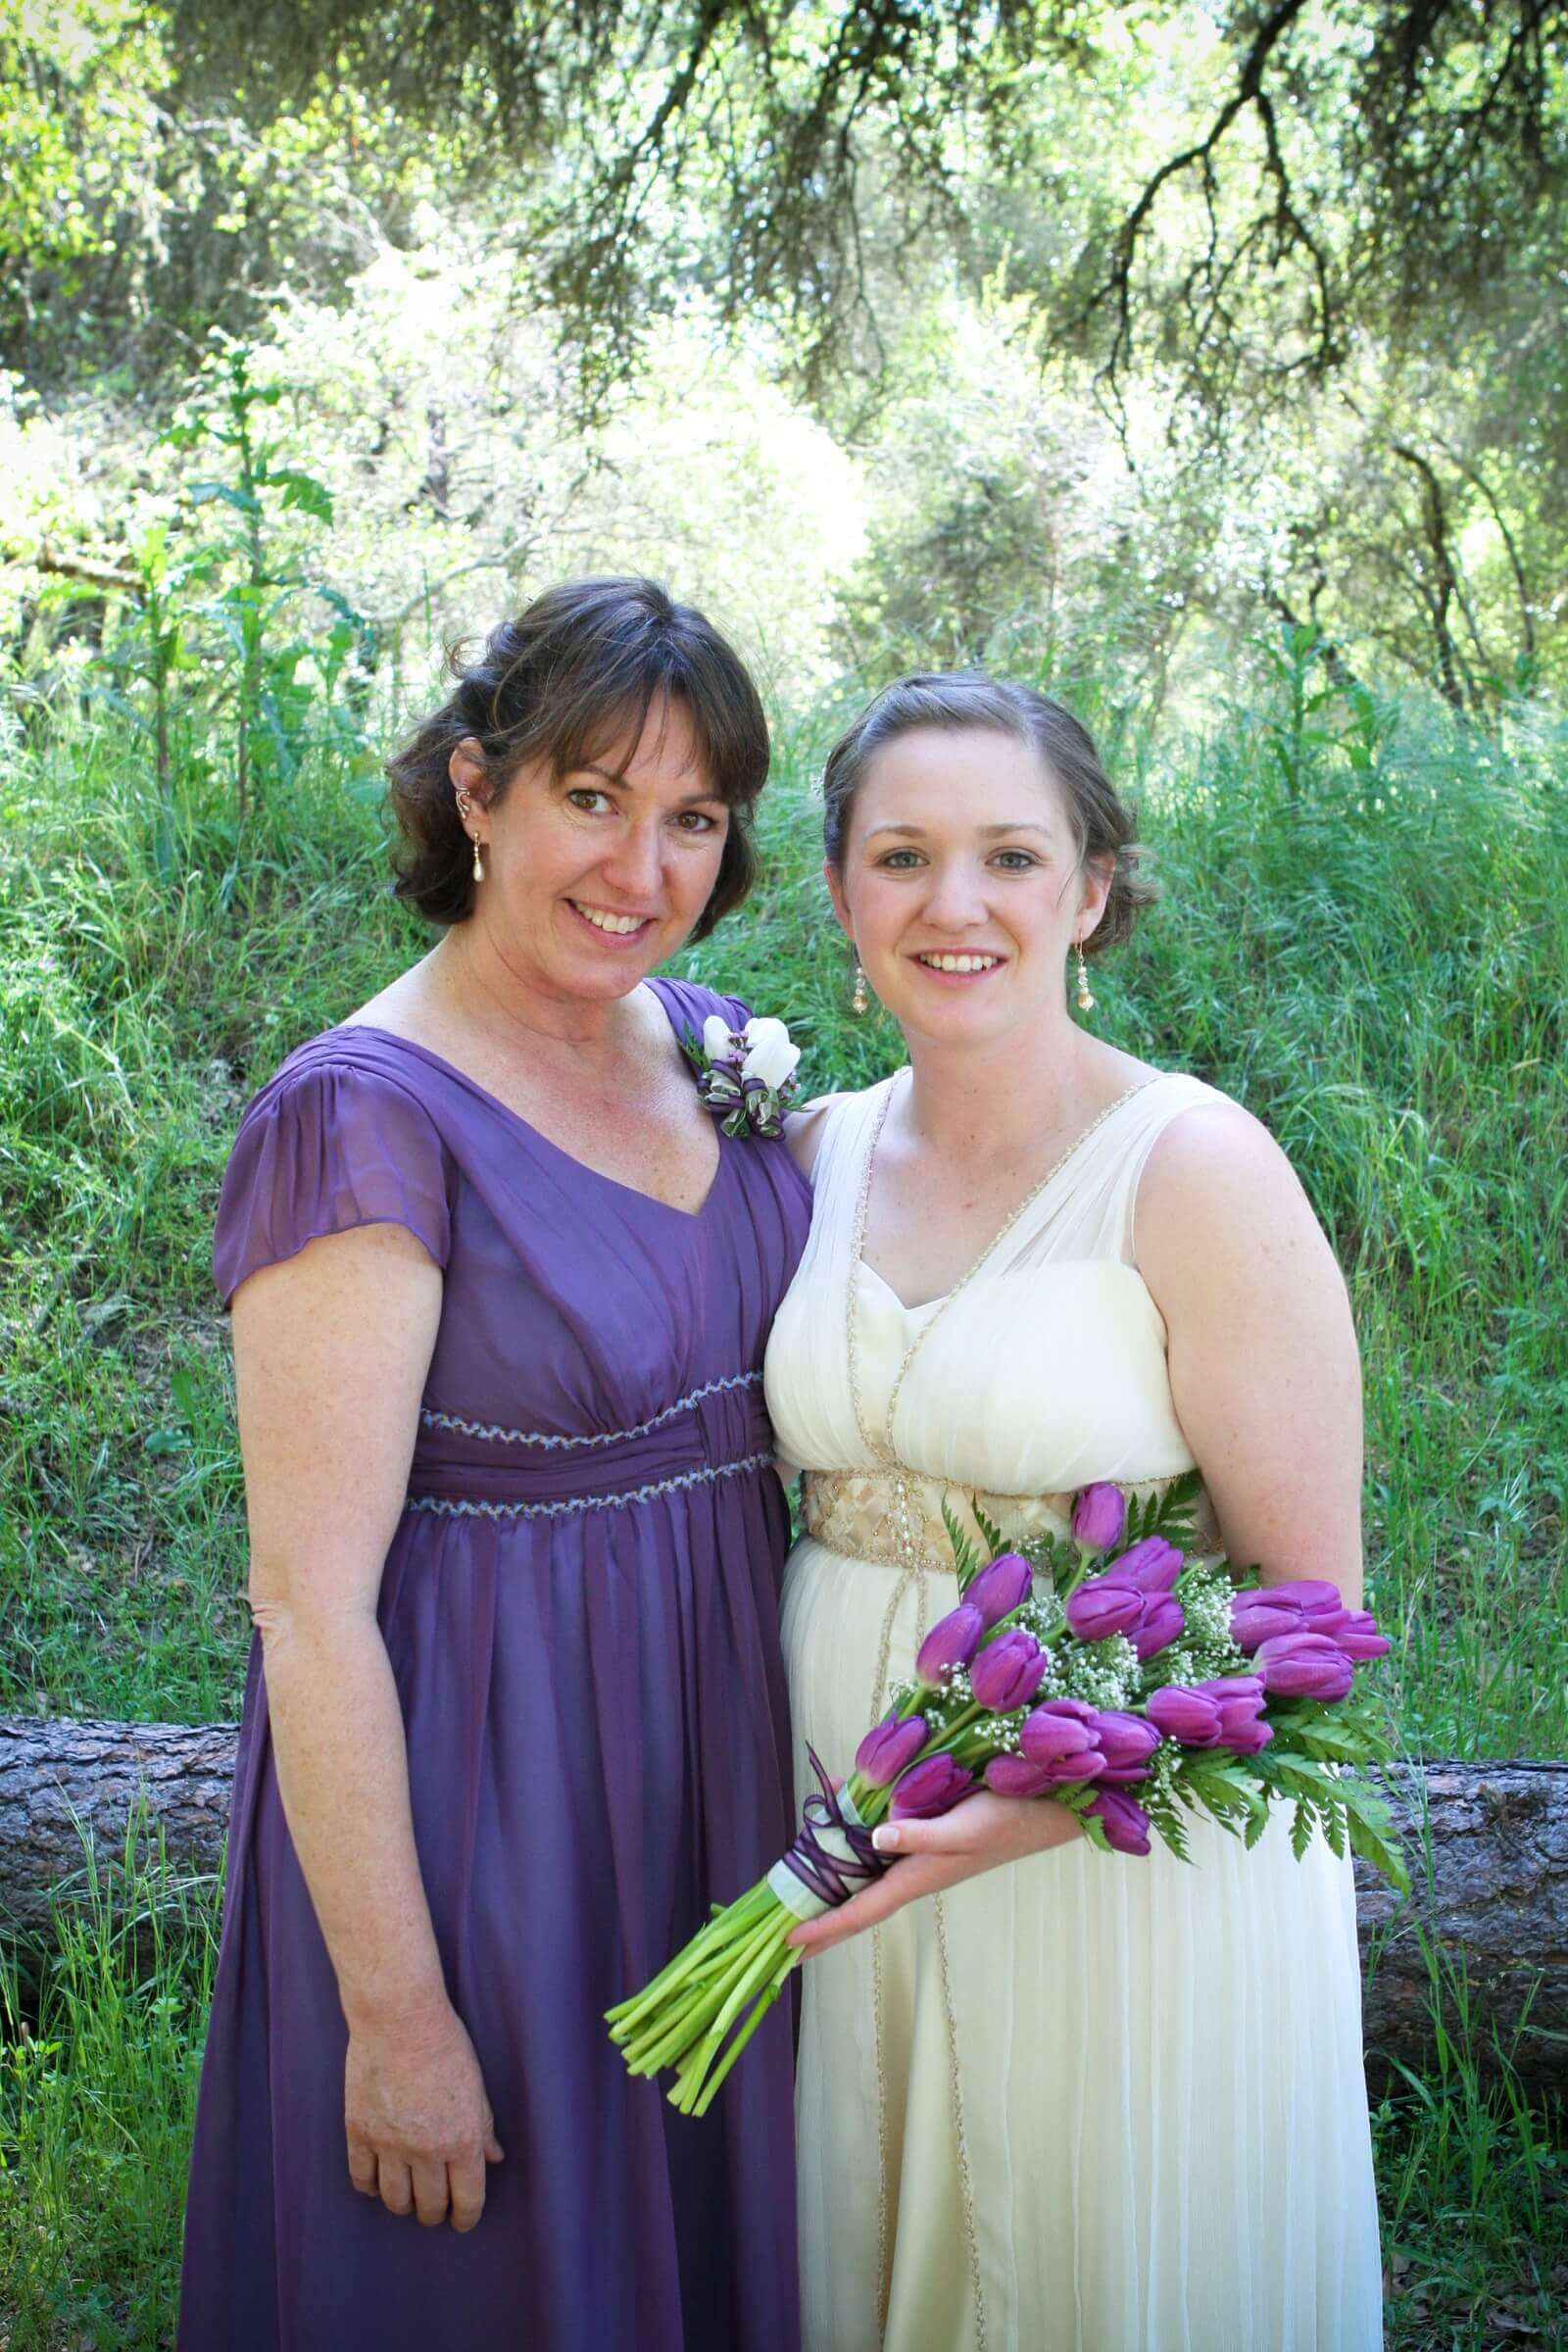 custom Dress for the Mother of the Bride by Rebecca Wendlandt